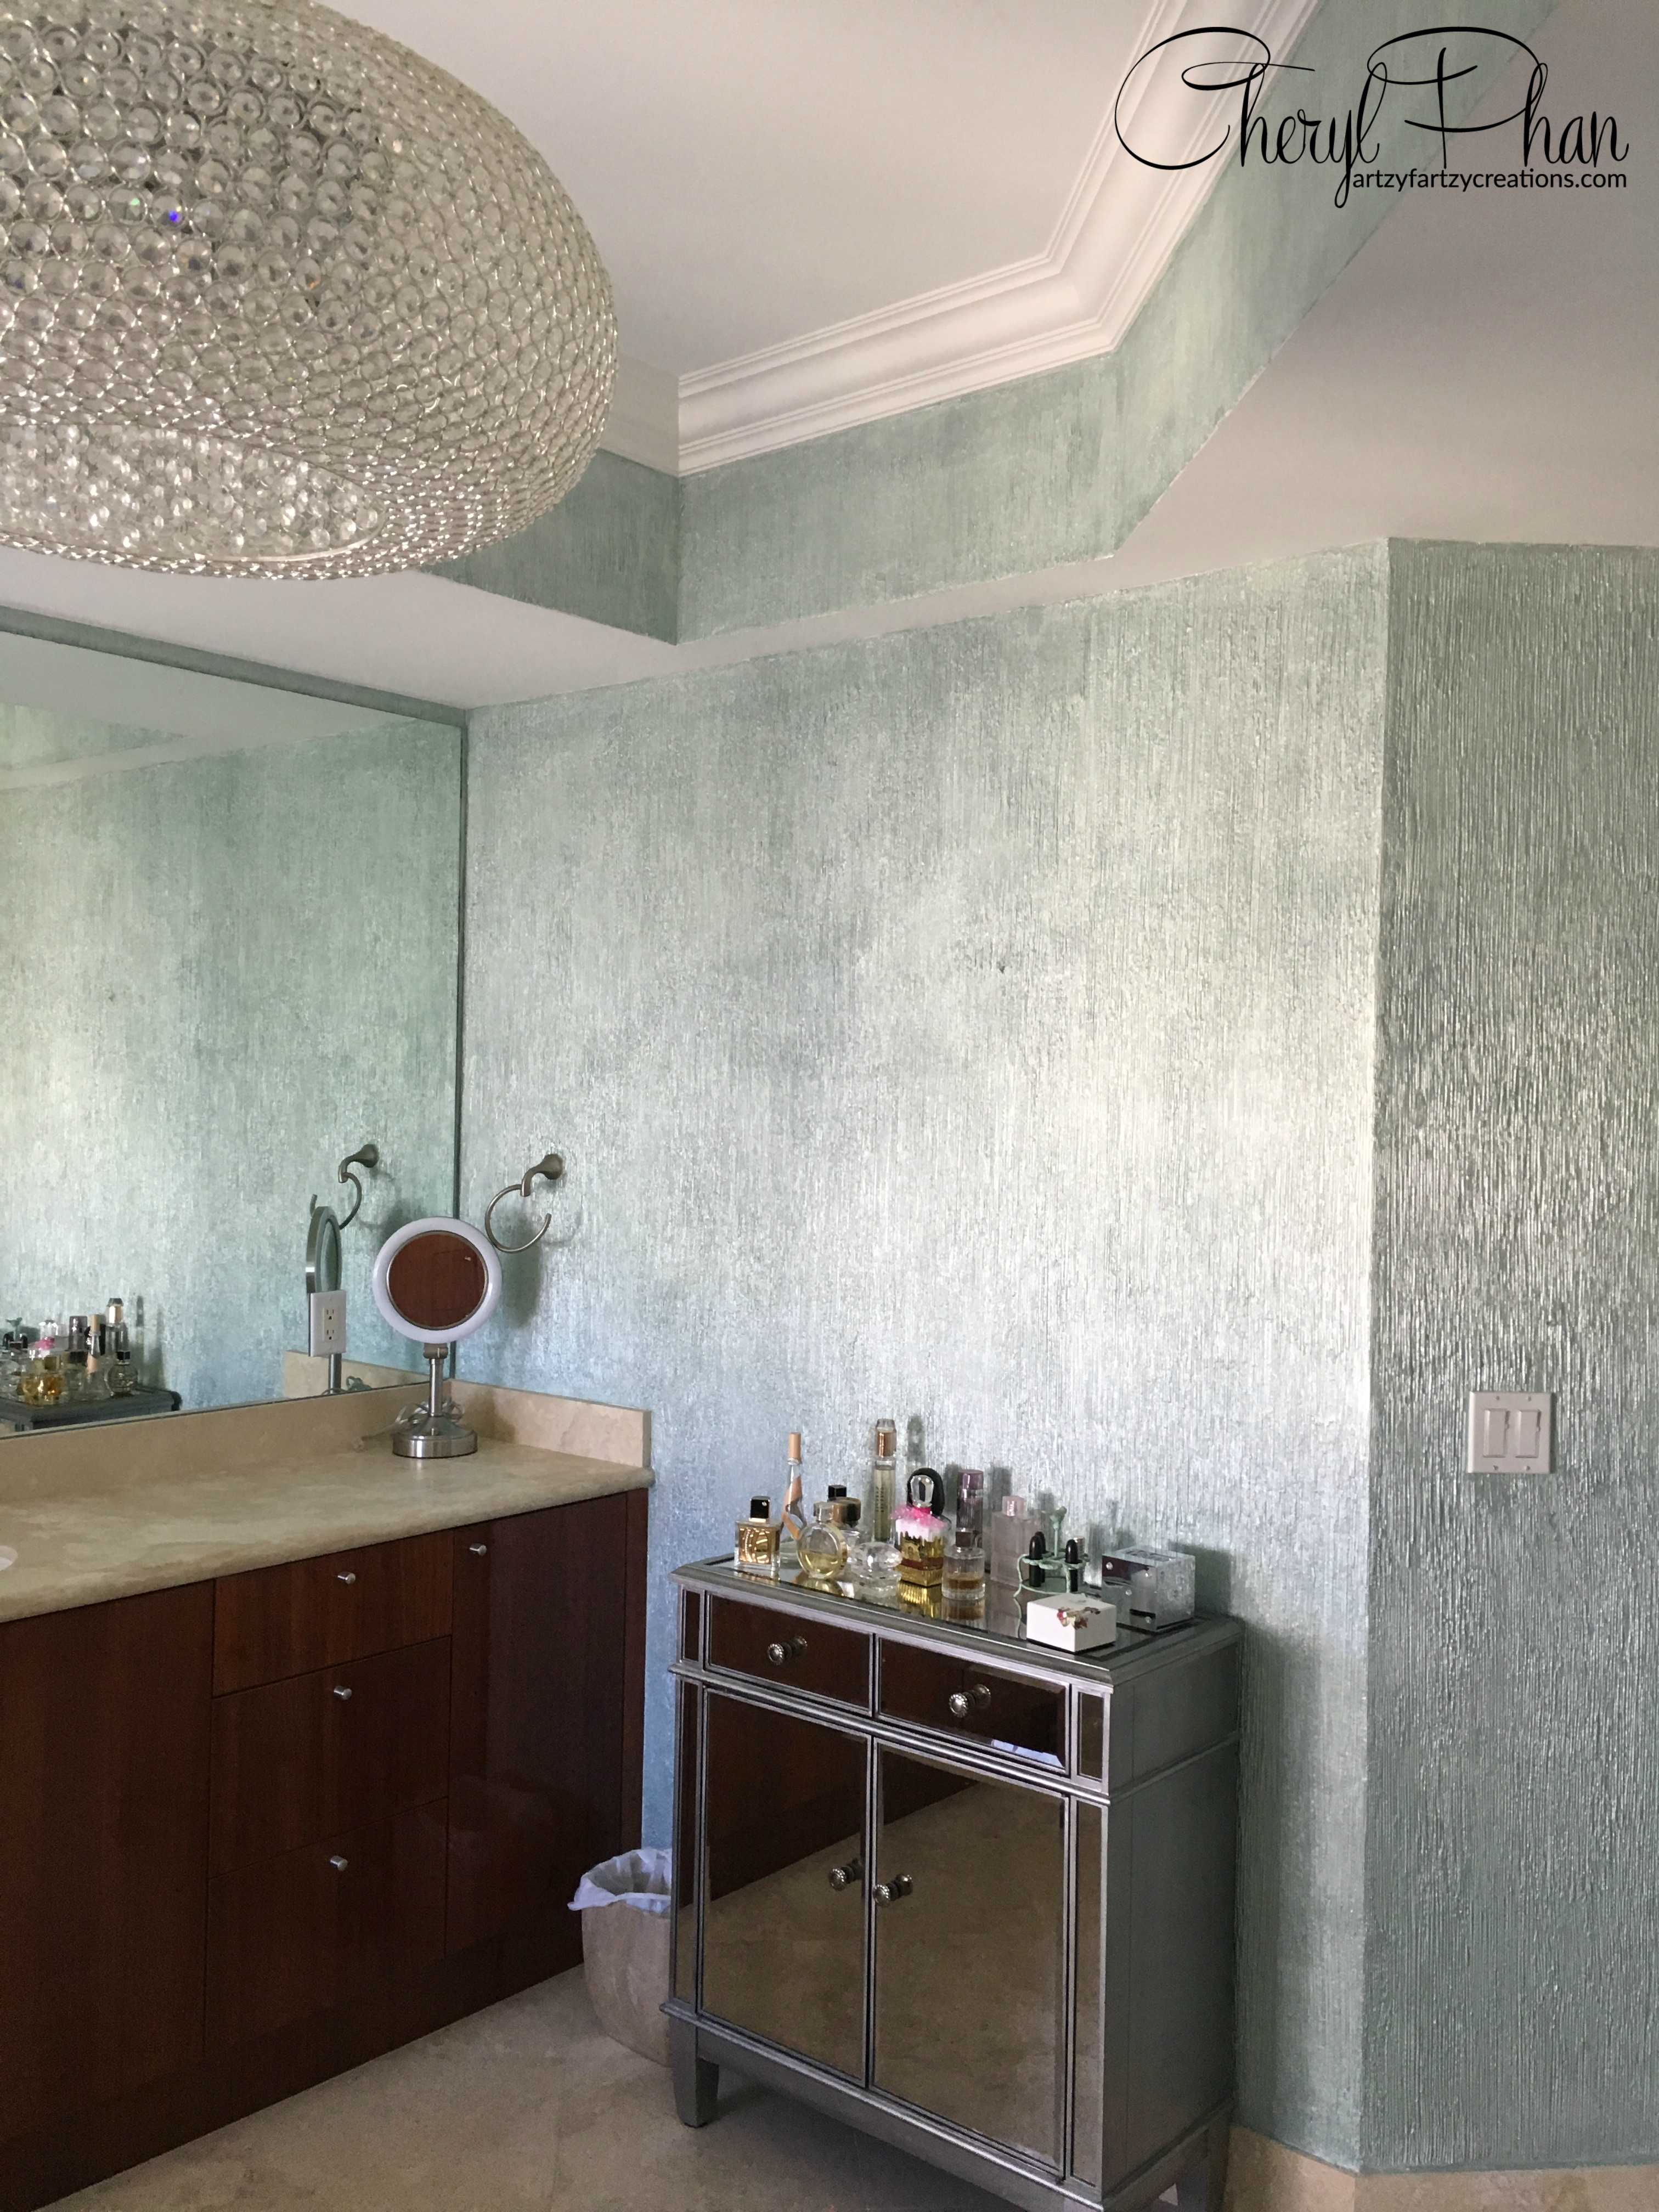 Metallic Paints For Interior Walls: How To Paint A Textured Metallic Wall Finish By Cheryl Phan